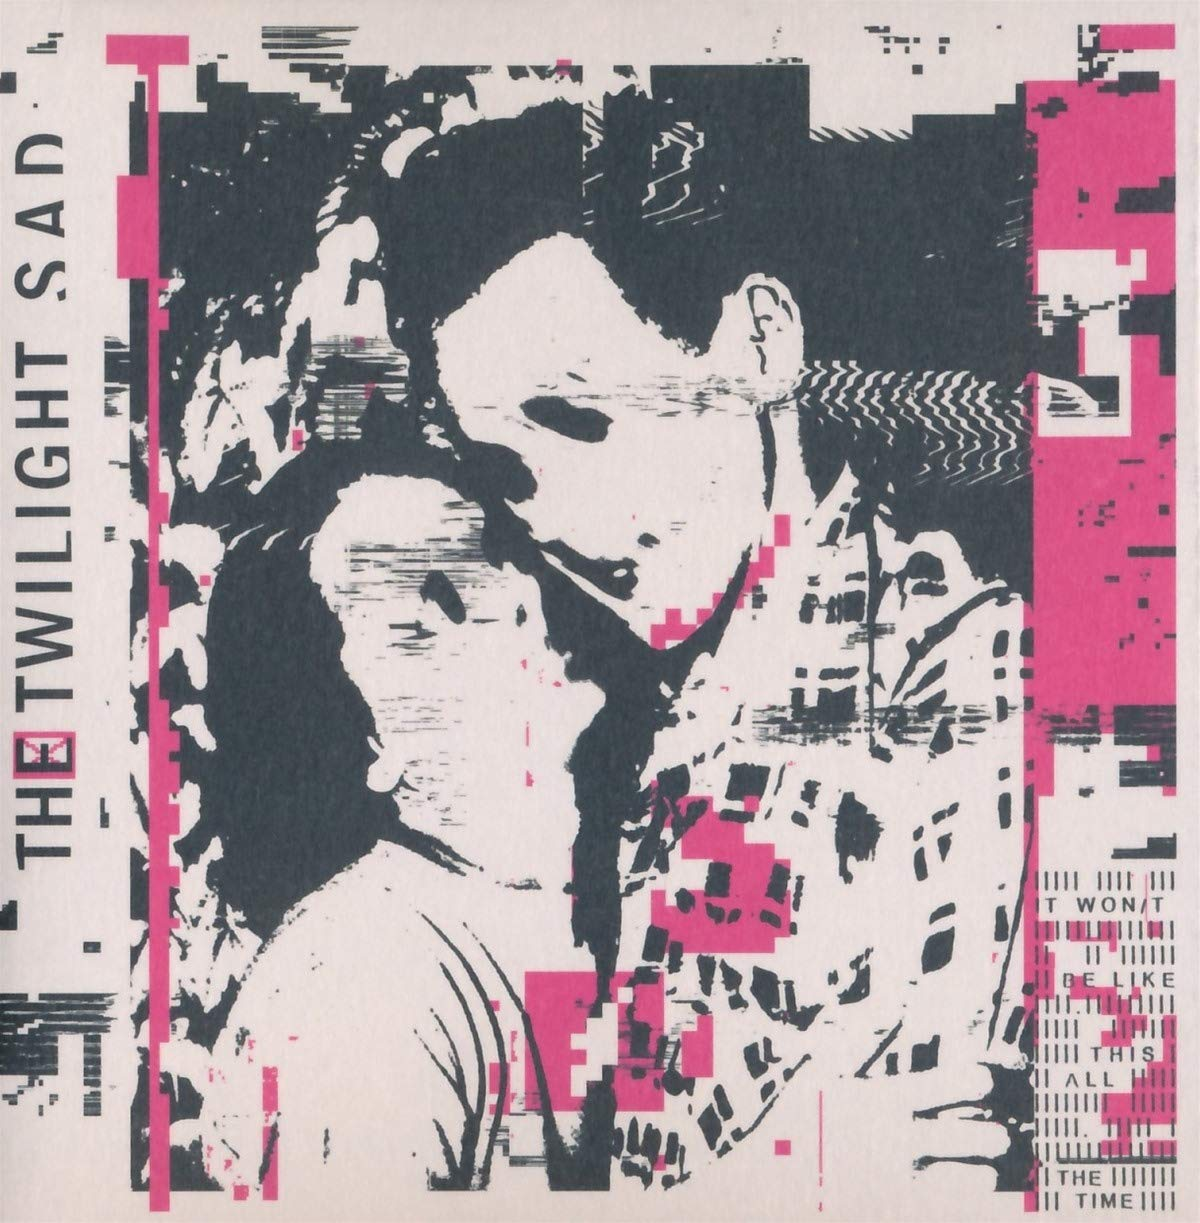 Buy The Twilight Sad, It Won't Be Like This All the Time New or Used via Amazon